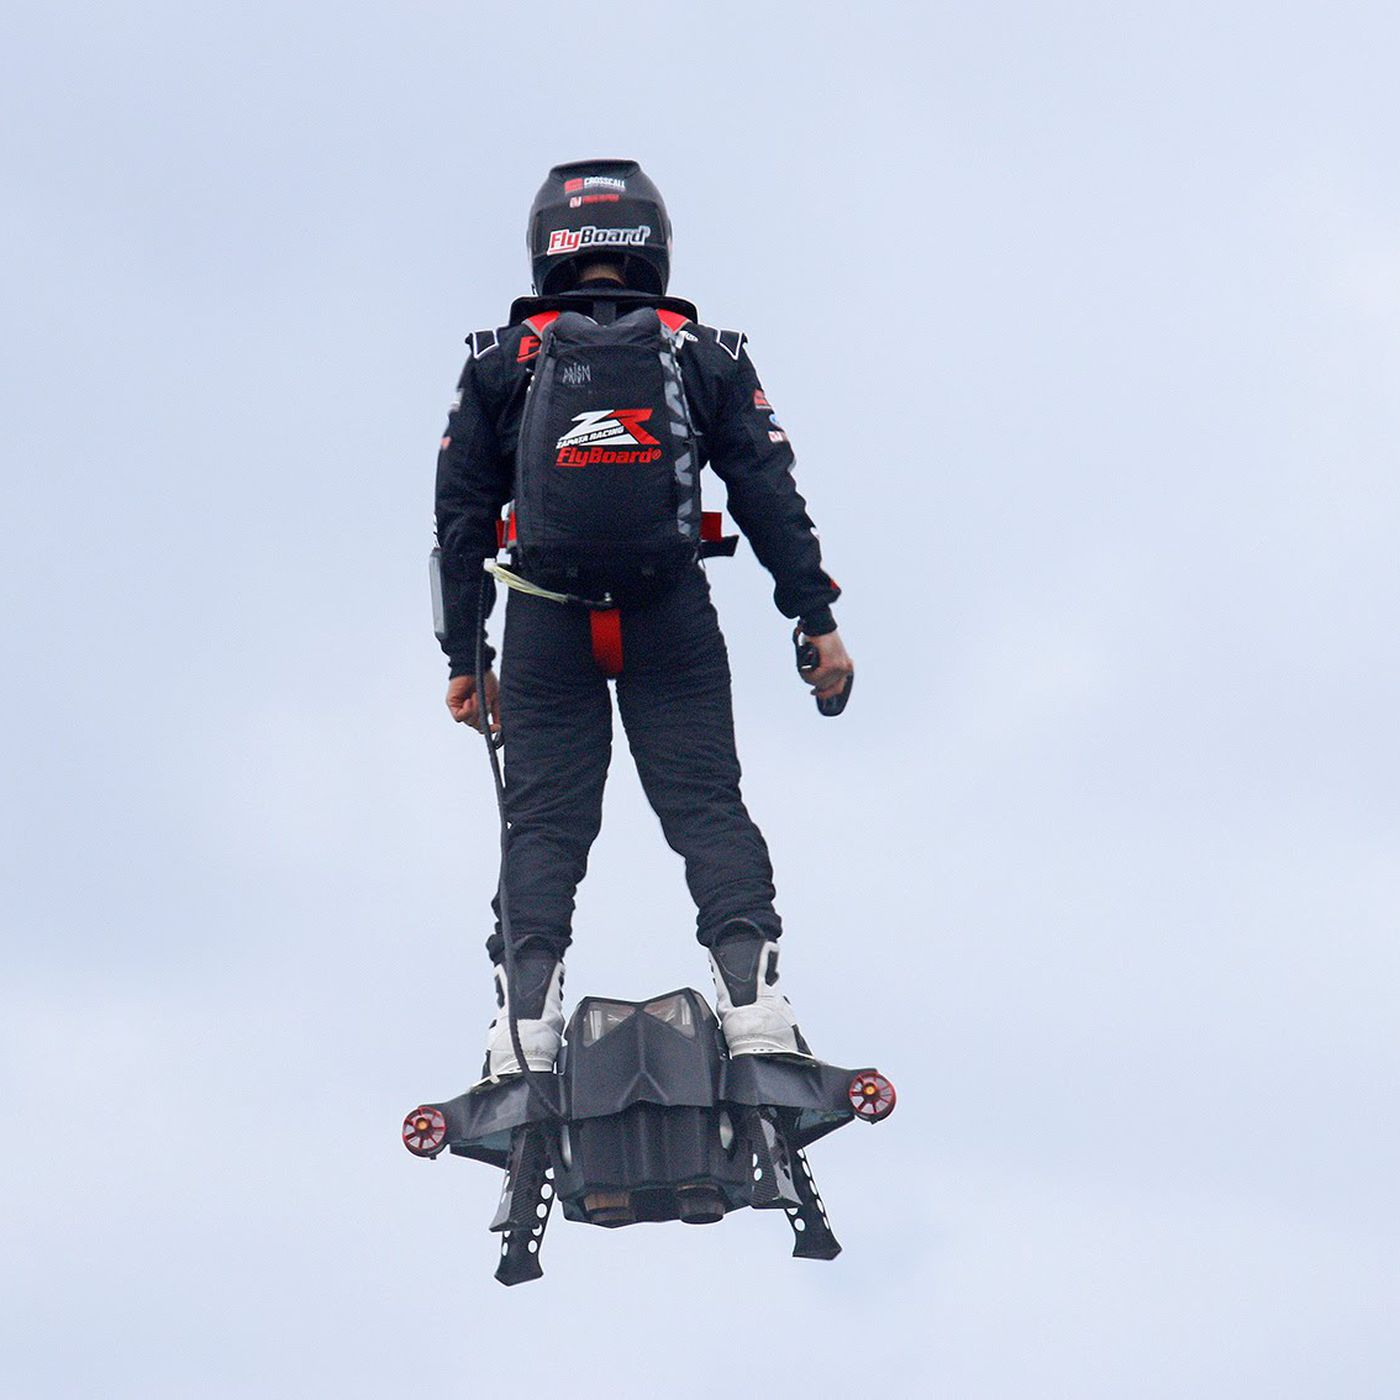 French hoverboard inventor banned from flying in France